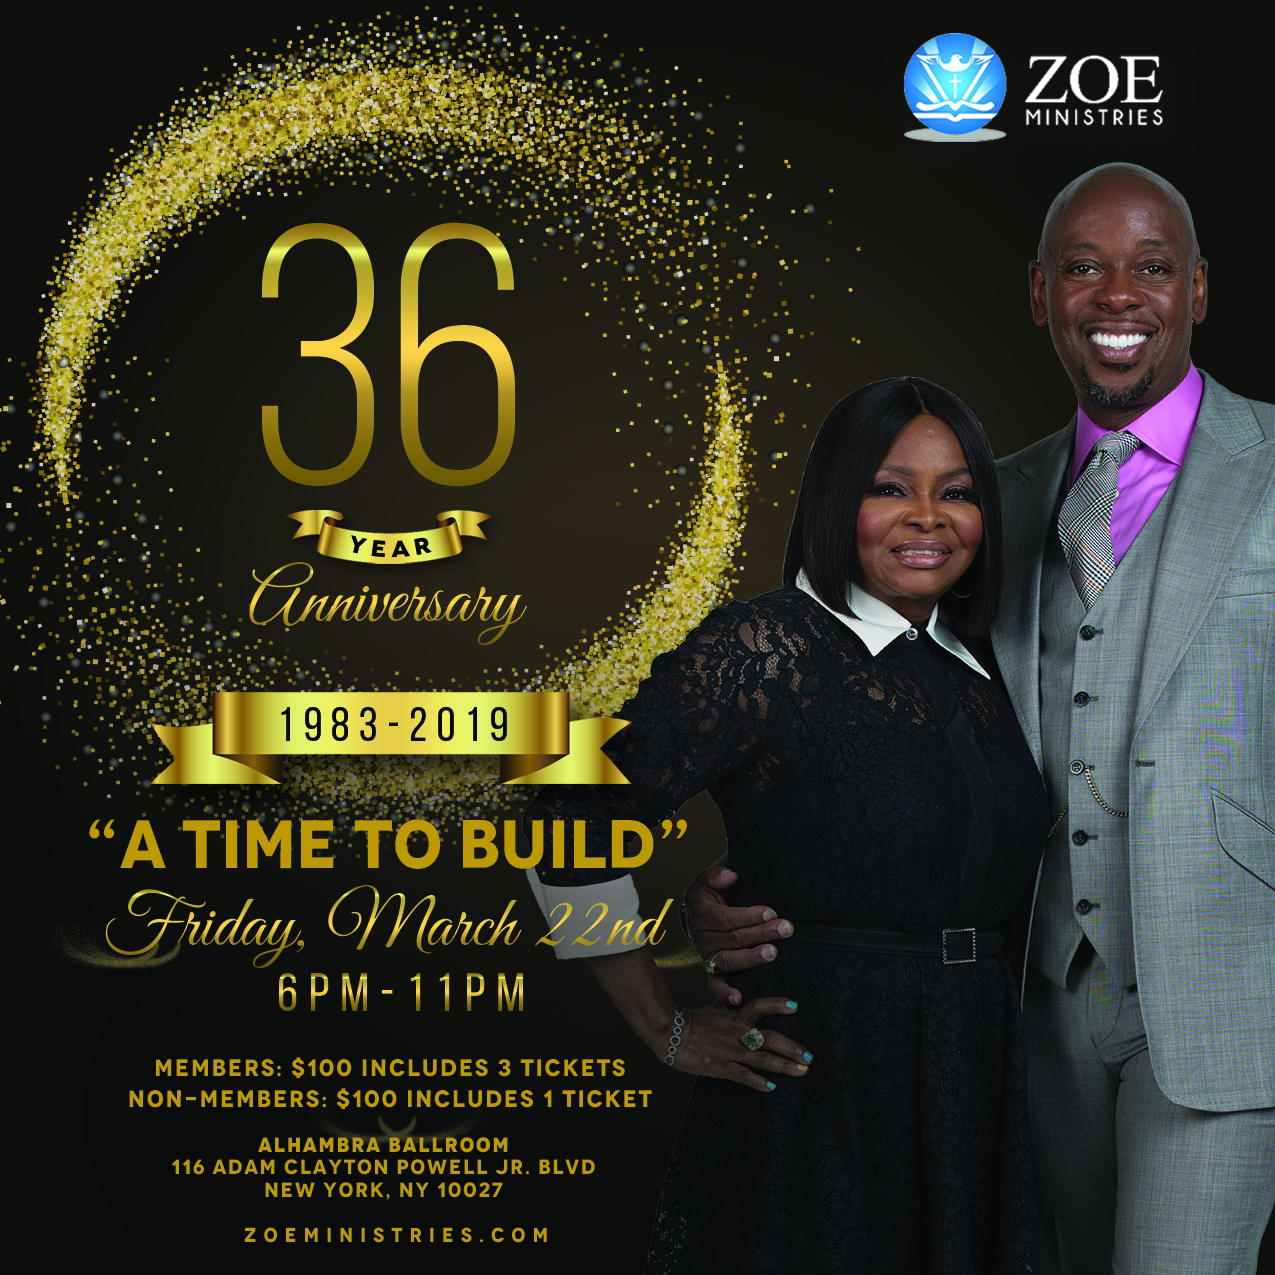 Zoe Ministries 36th Year Anniversary Celebration